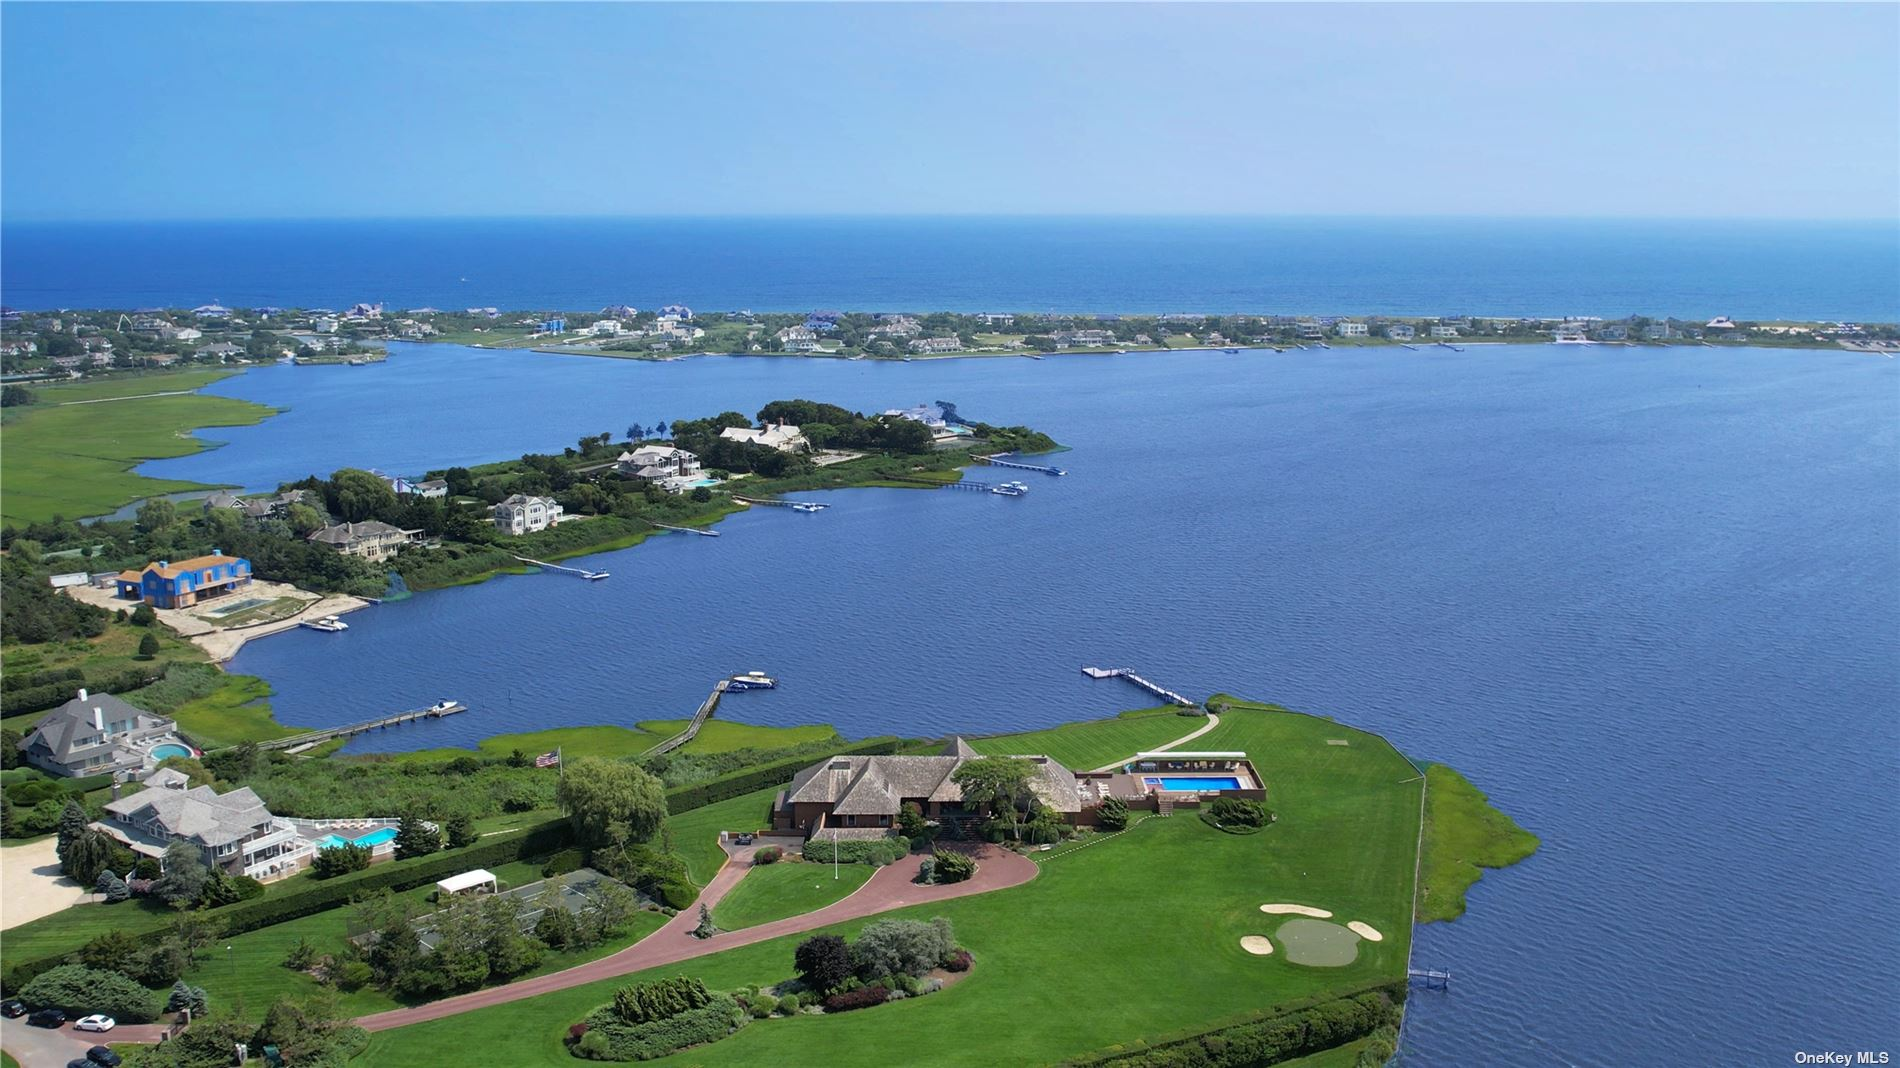 An Impressive And Premier Waterfront Estate Designed By Renowned Architect, Norman Jaffe, In Quogue On The Desirable Quantuck Bay. This Exquisite Estate Spanning Over 3 Acres and 420 +/- Feet Of Bulkheading Includes Two Docks, Southwest Views From Bay To Ocean, And The Most Spectacular Sunsets, Is Not To Be Missed. With 7,850 +/- sqft., Over 8,000 sqft. Of Outdoor Decking, A 20 x 50 Ft Pool, Spa & Sundeck, Tennis Court, Professional Putting Green, 100 Ft Stationary Pier With 30 Ft Floating Dock, There Is No Need To Look Farther East When You Can Own Your Own Hamptons Waterfront Haven Right In Quogue!  Also, Available As A Package With A Buildable Vacant Lot Of +/-2.7 Acres At 2 Seascape Lane For $17,999,999.